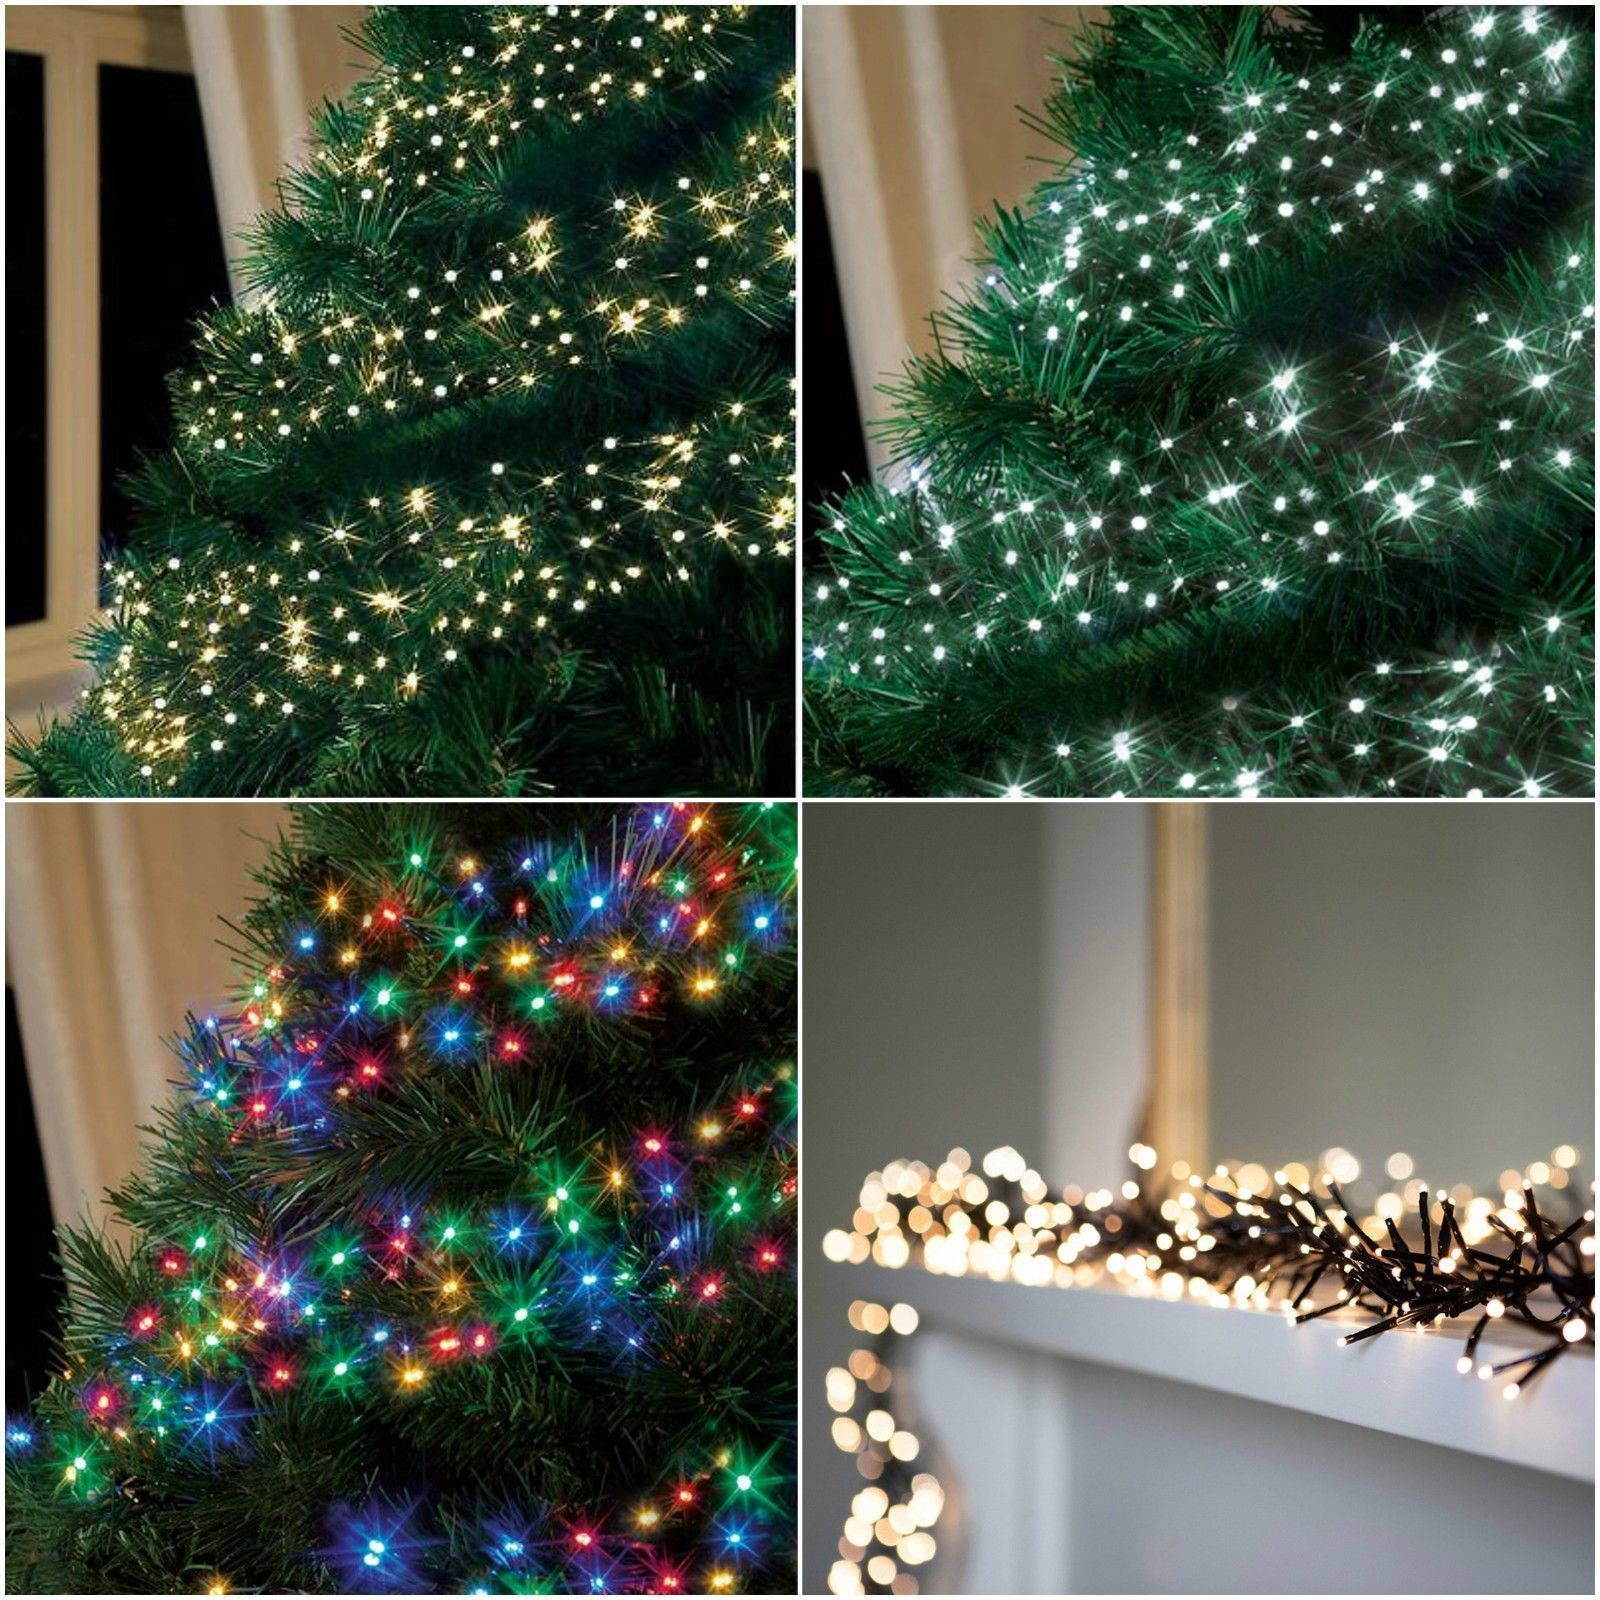 How To String Lights On A Christmas Tree Delectable 280480720960 Led #christmas Cluster #string #lights Indoor Inspiration Design